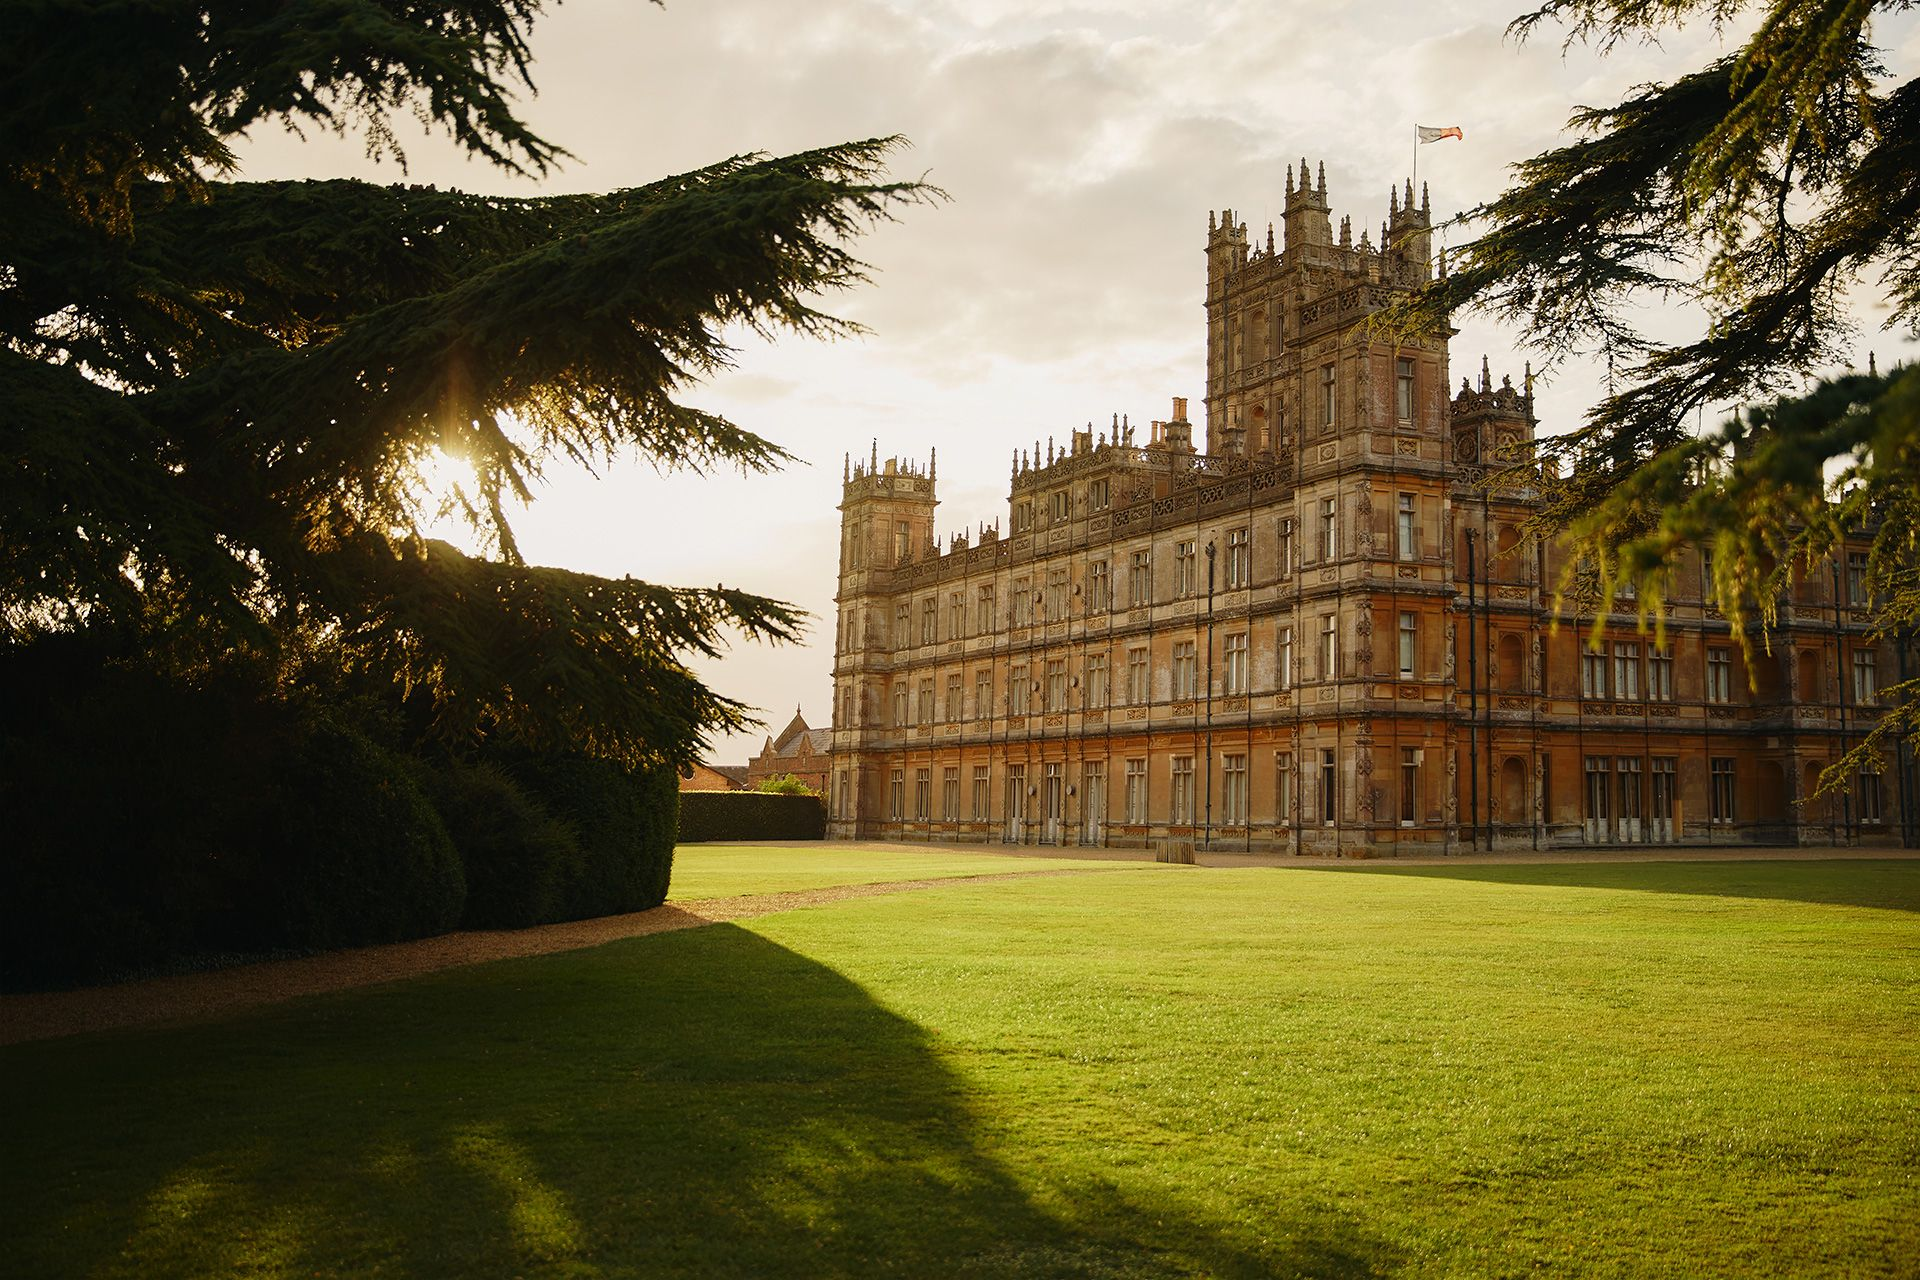 Highclere Castle, home of Downton Abbey, will be available to book on Airbnb for one night only